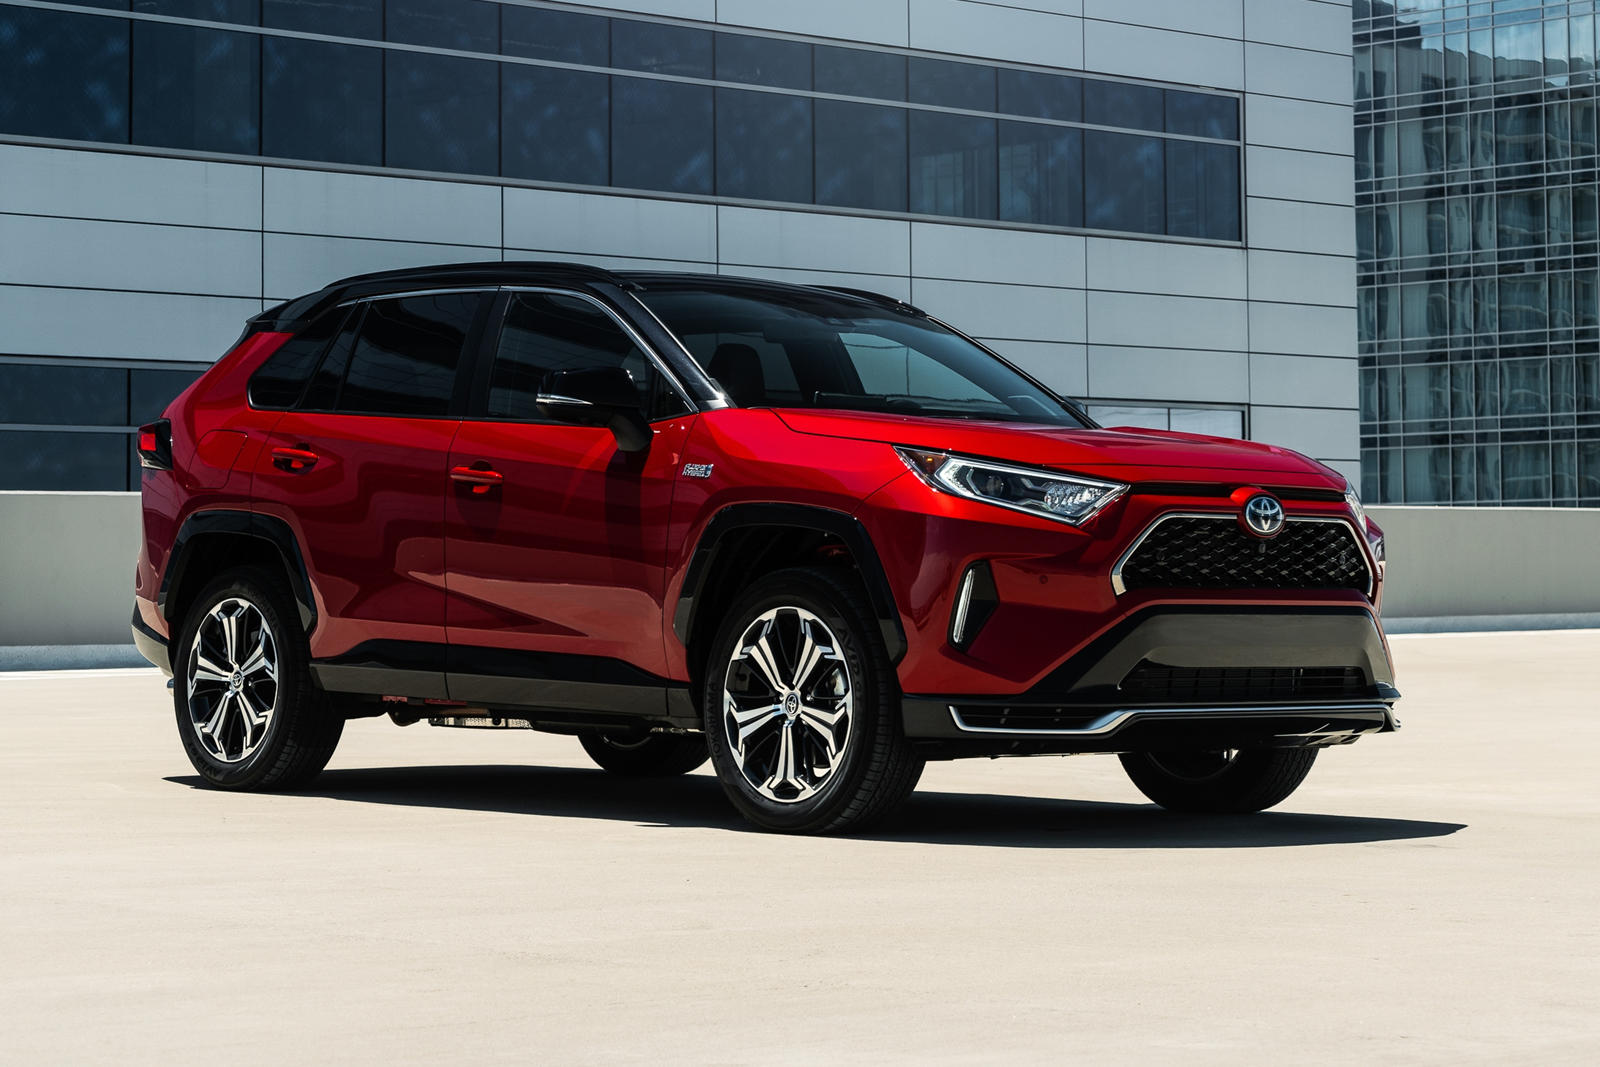 The Most Powerful Toyota RAV4 Ever Has A Hefty Price Tag